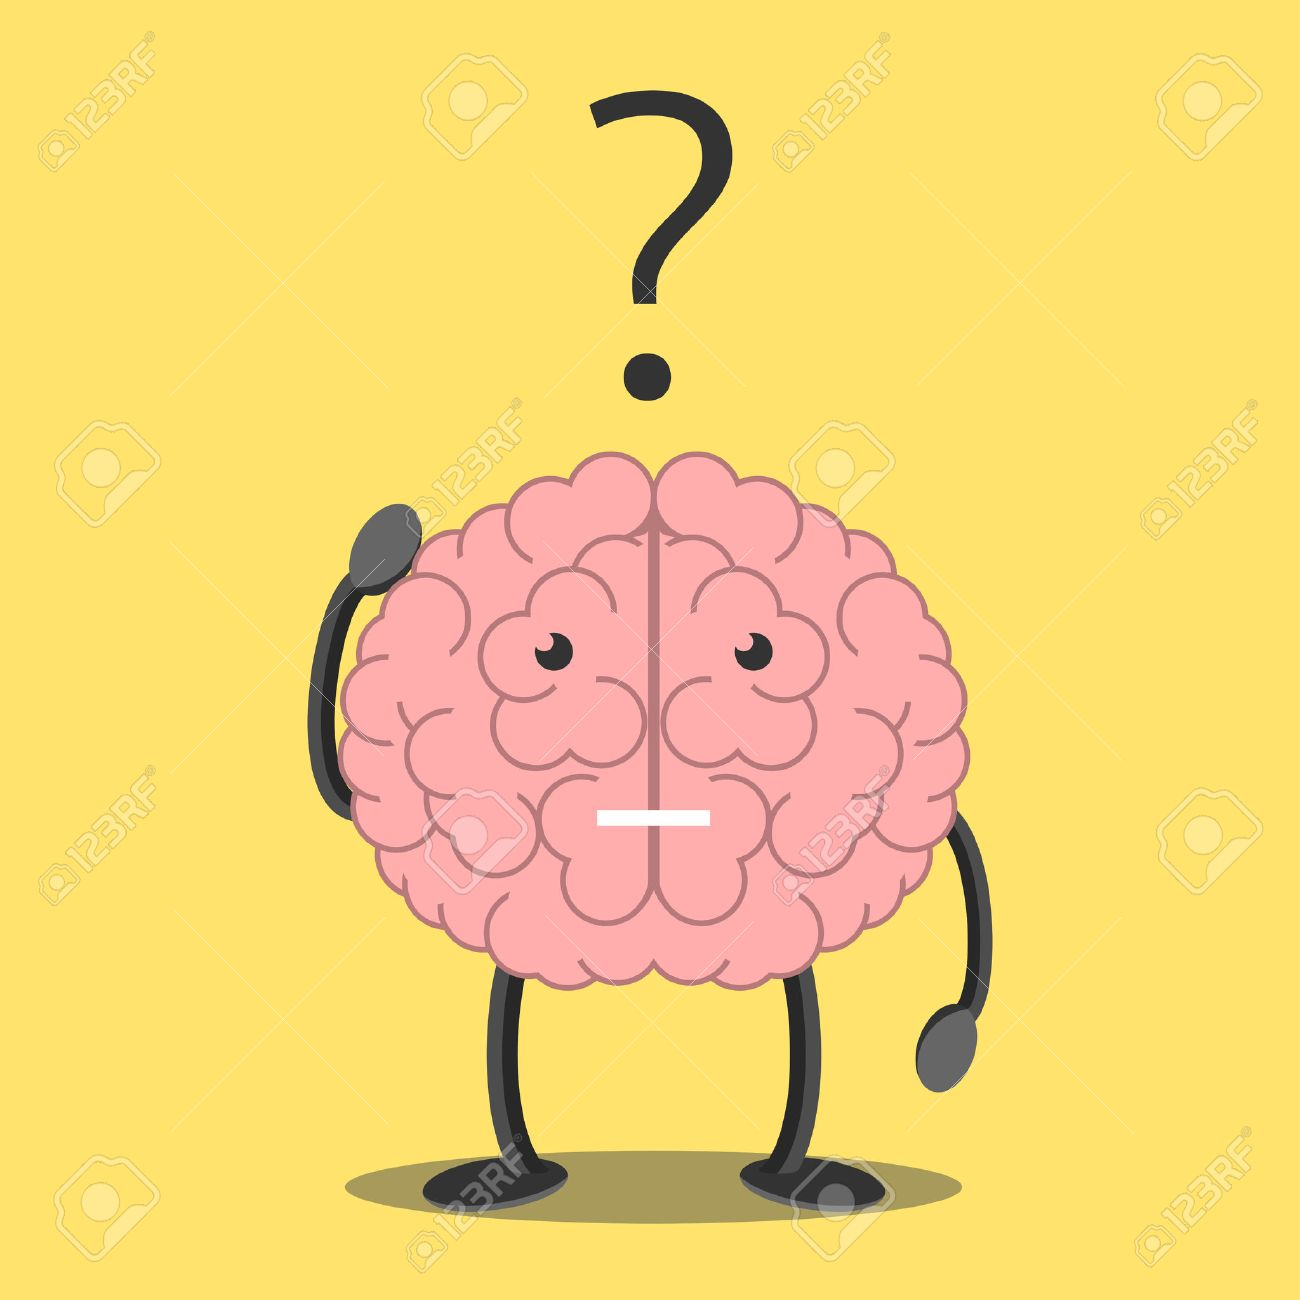 Confused brain character scratching head in bewilderment and question mark. Memory, problem, task, solution, science, creativity, imagination concept. - 50633765